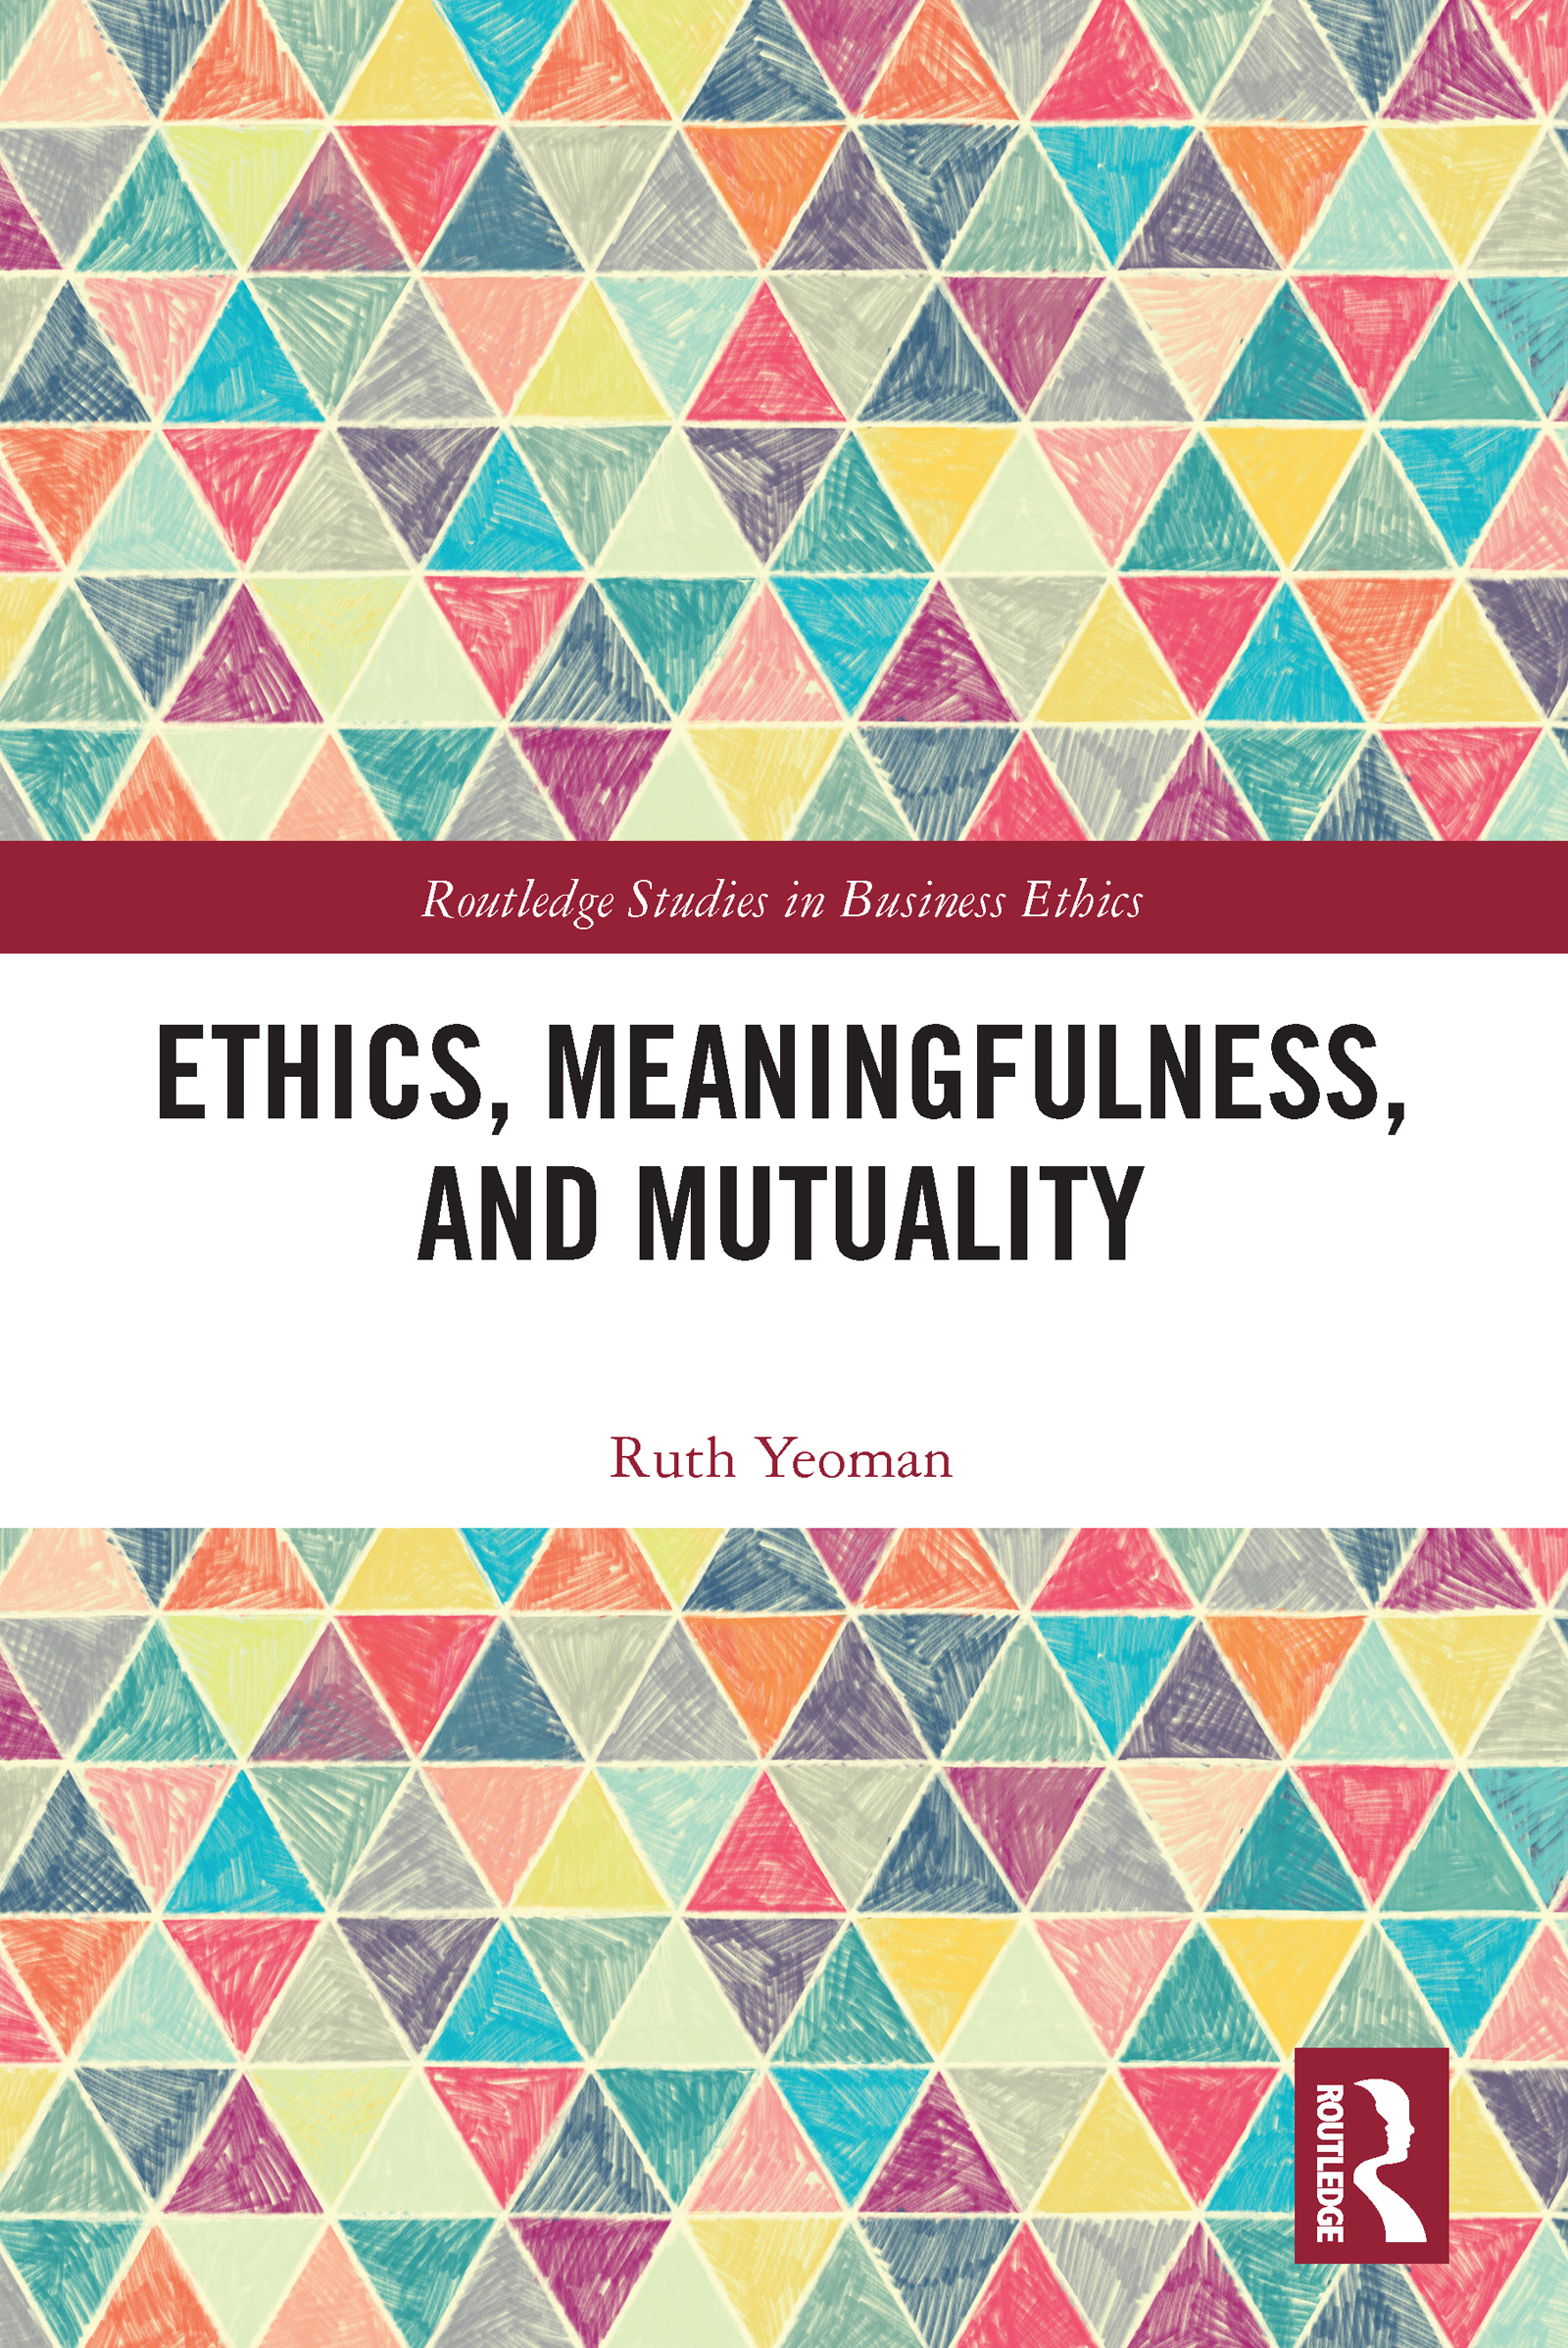 Ethics, Meaningfulness, and Mutuality